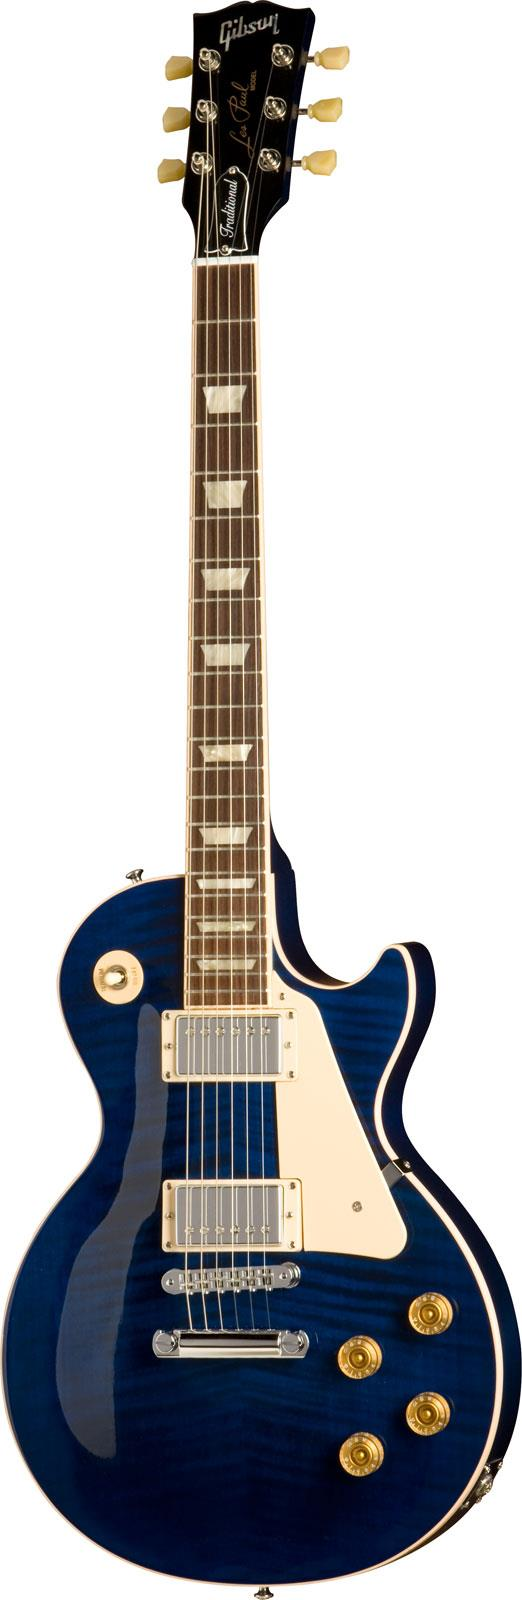 gibson les paul traditional chicago blue keymusic. Black Bedroom Furniture Sets. Home Design Ideas